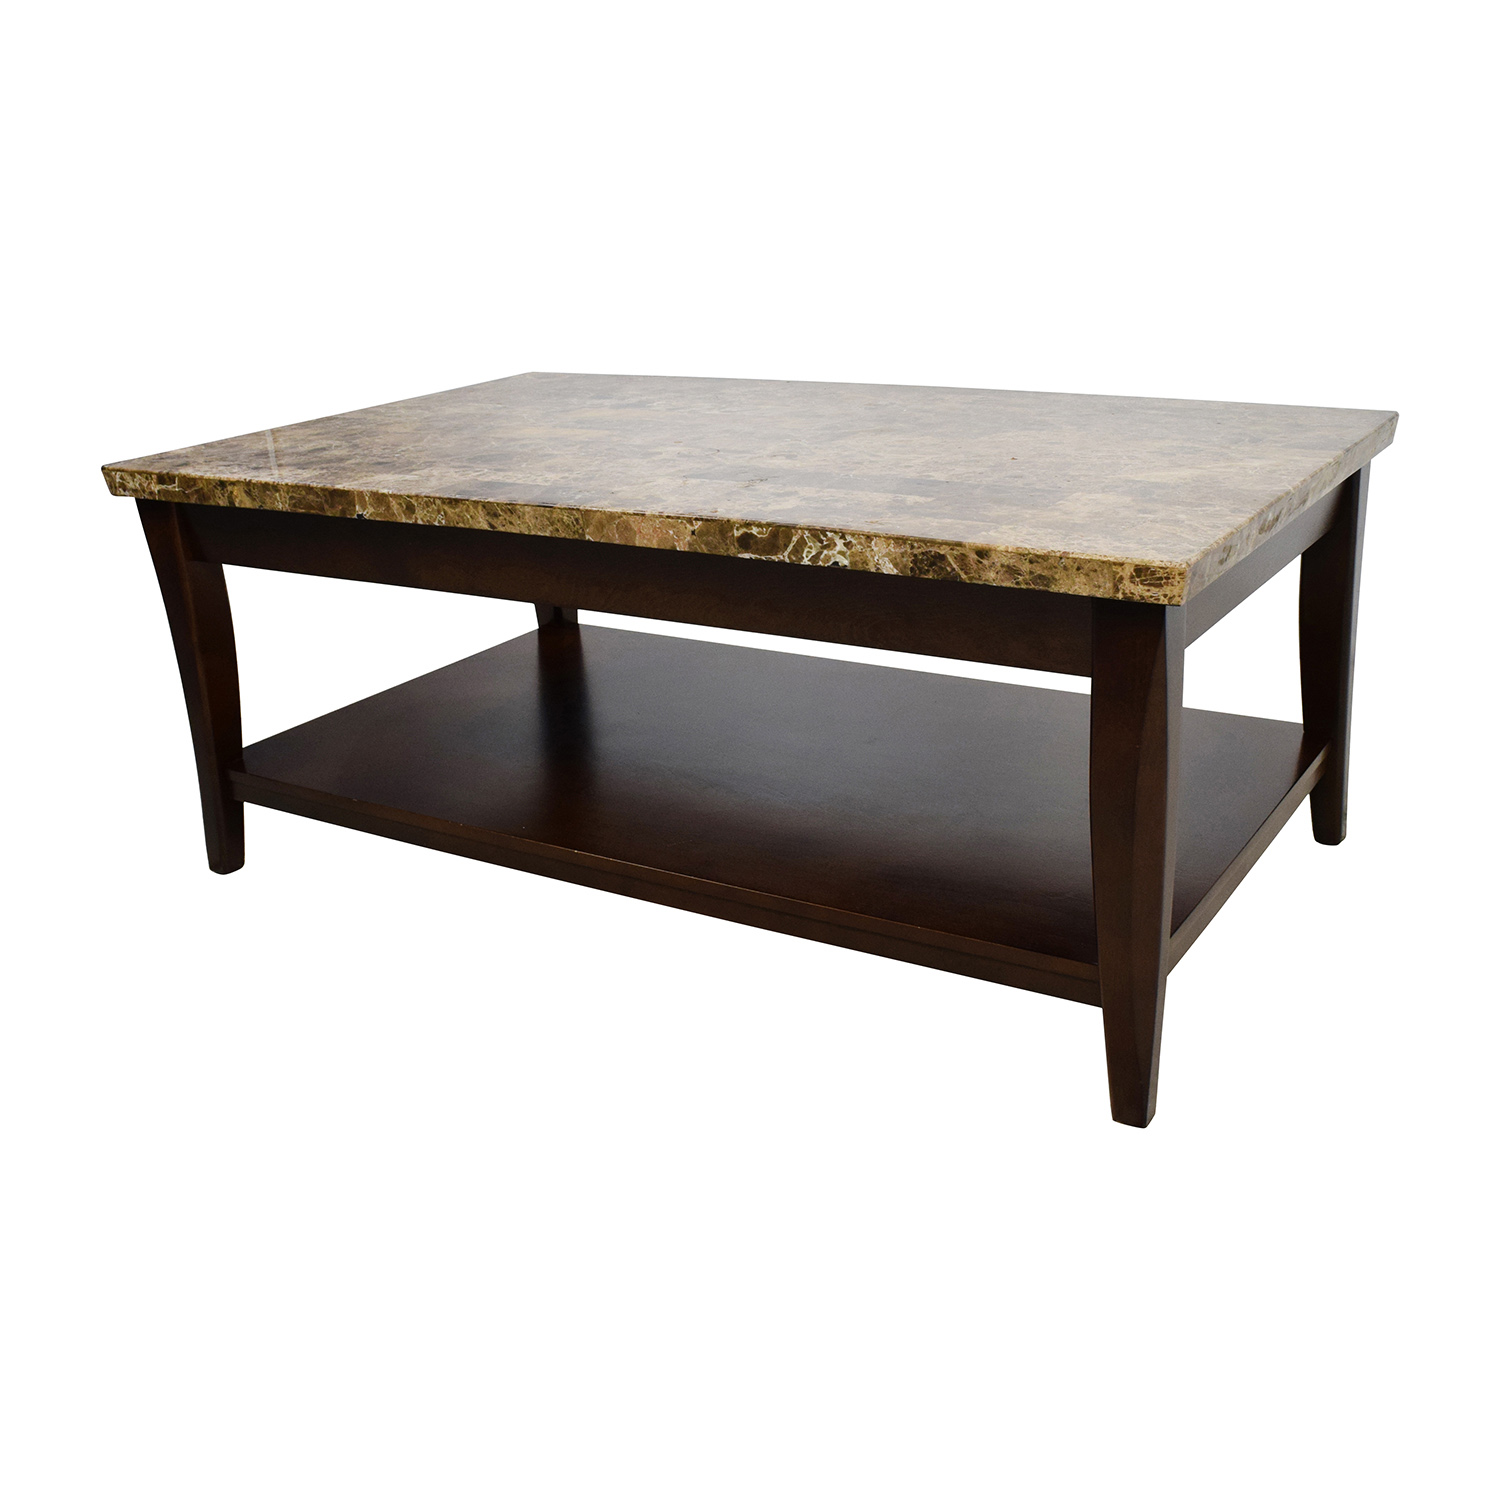 71 off marble and wood coffee table tables for Wooden coffee tables images